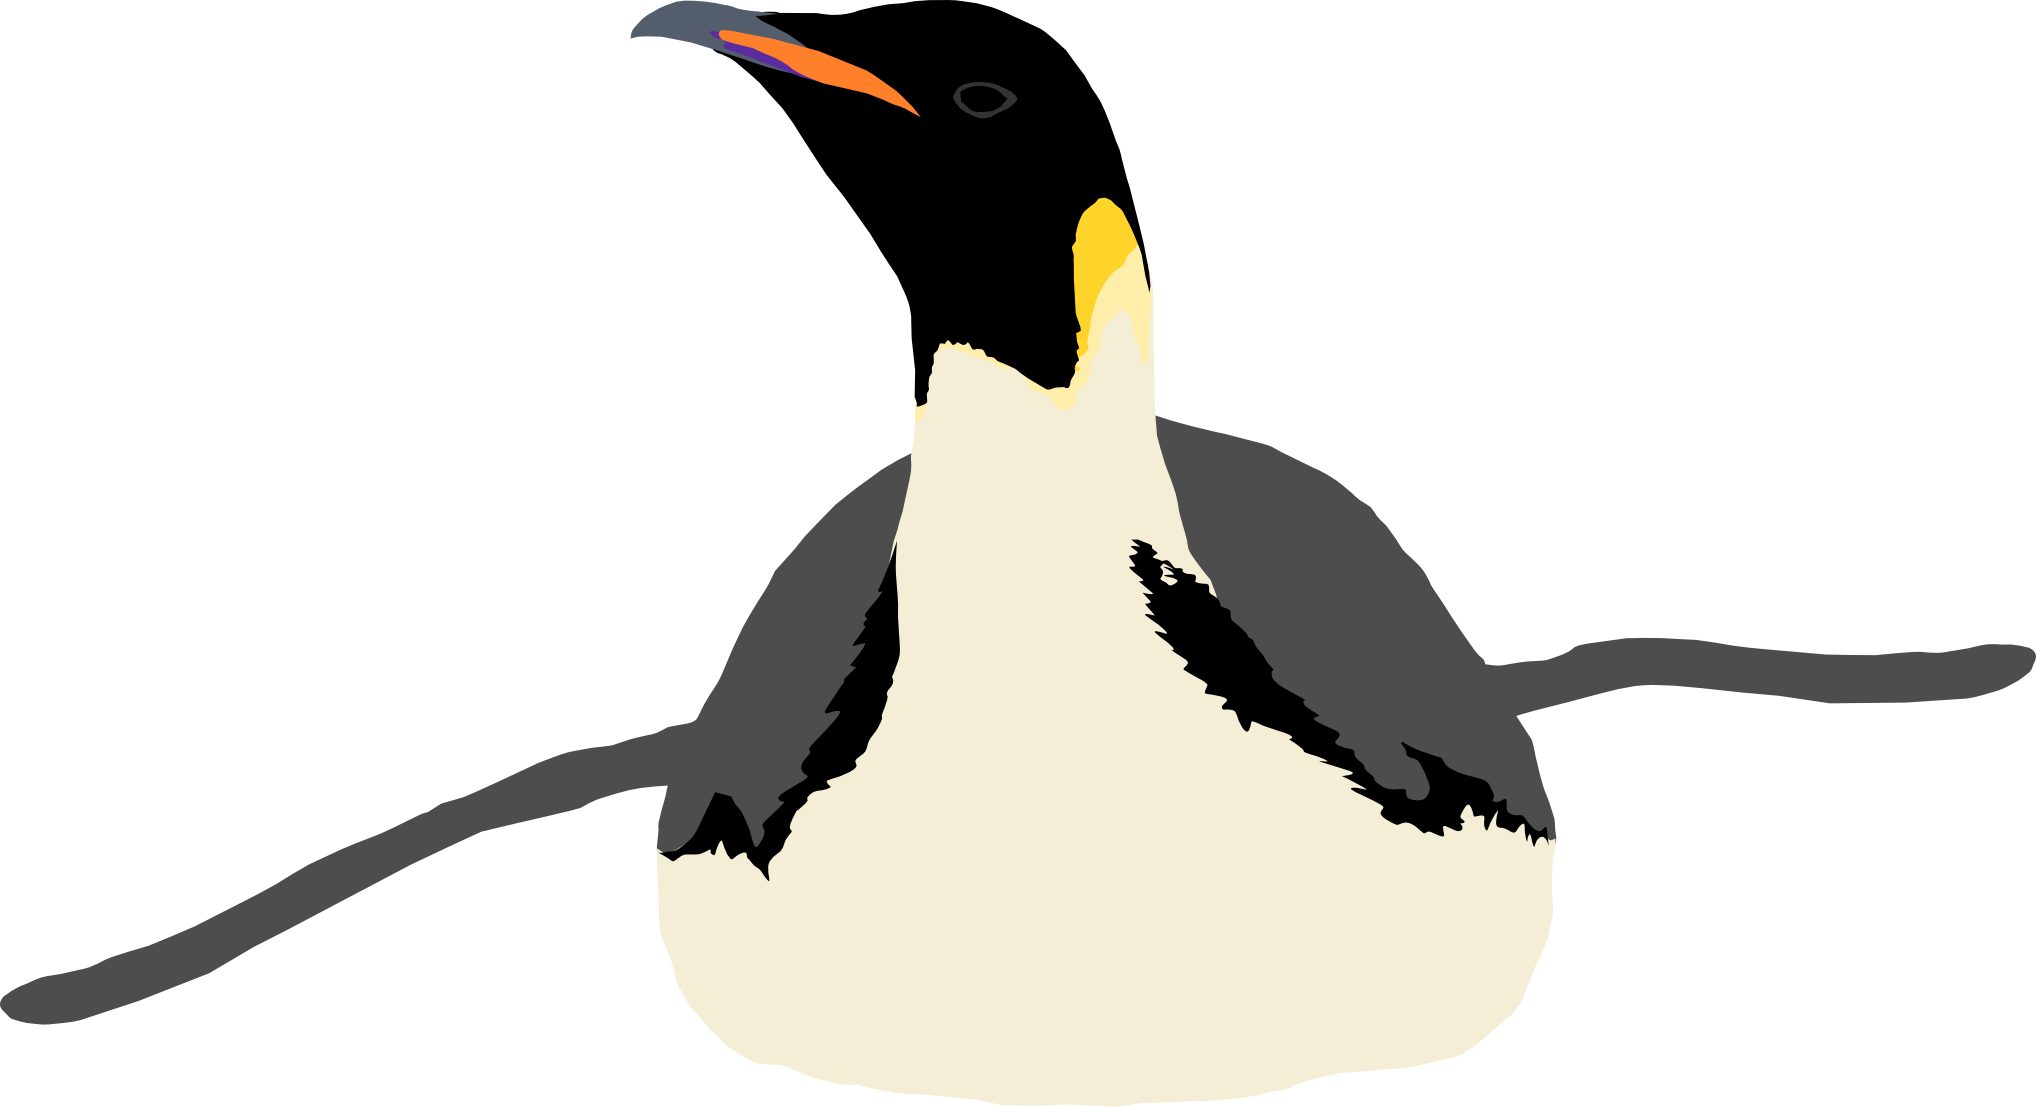 Emperor by michell vall. Clipart penguin gentoo penguin